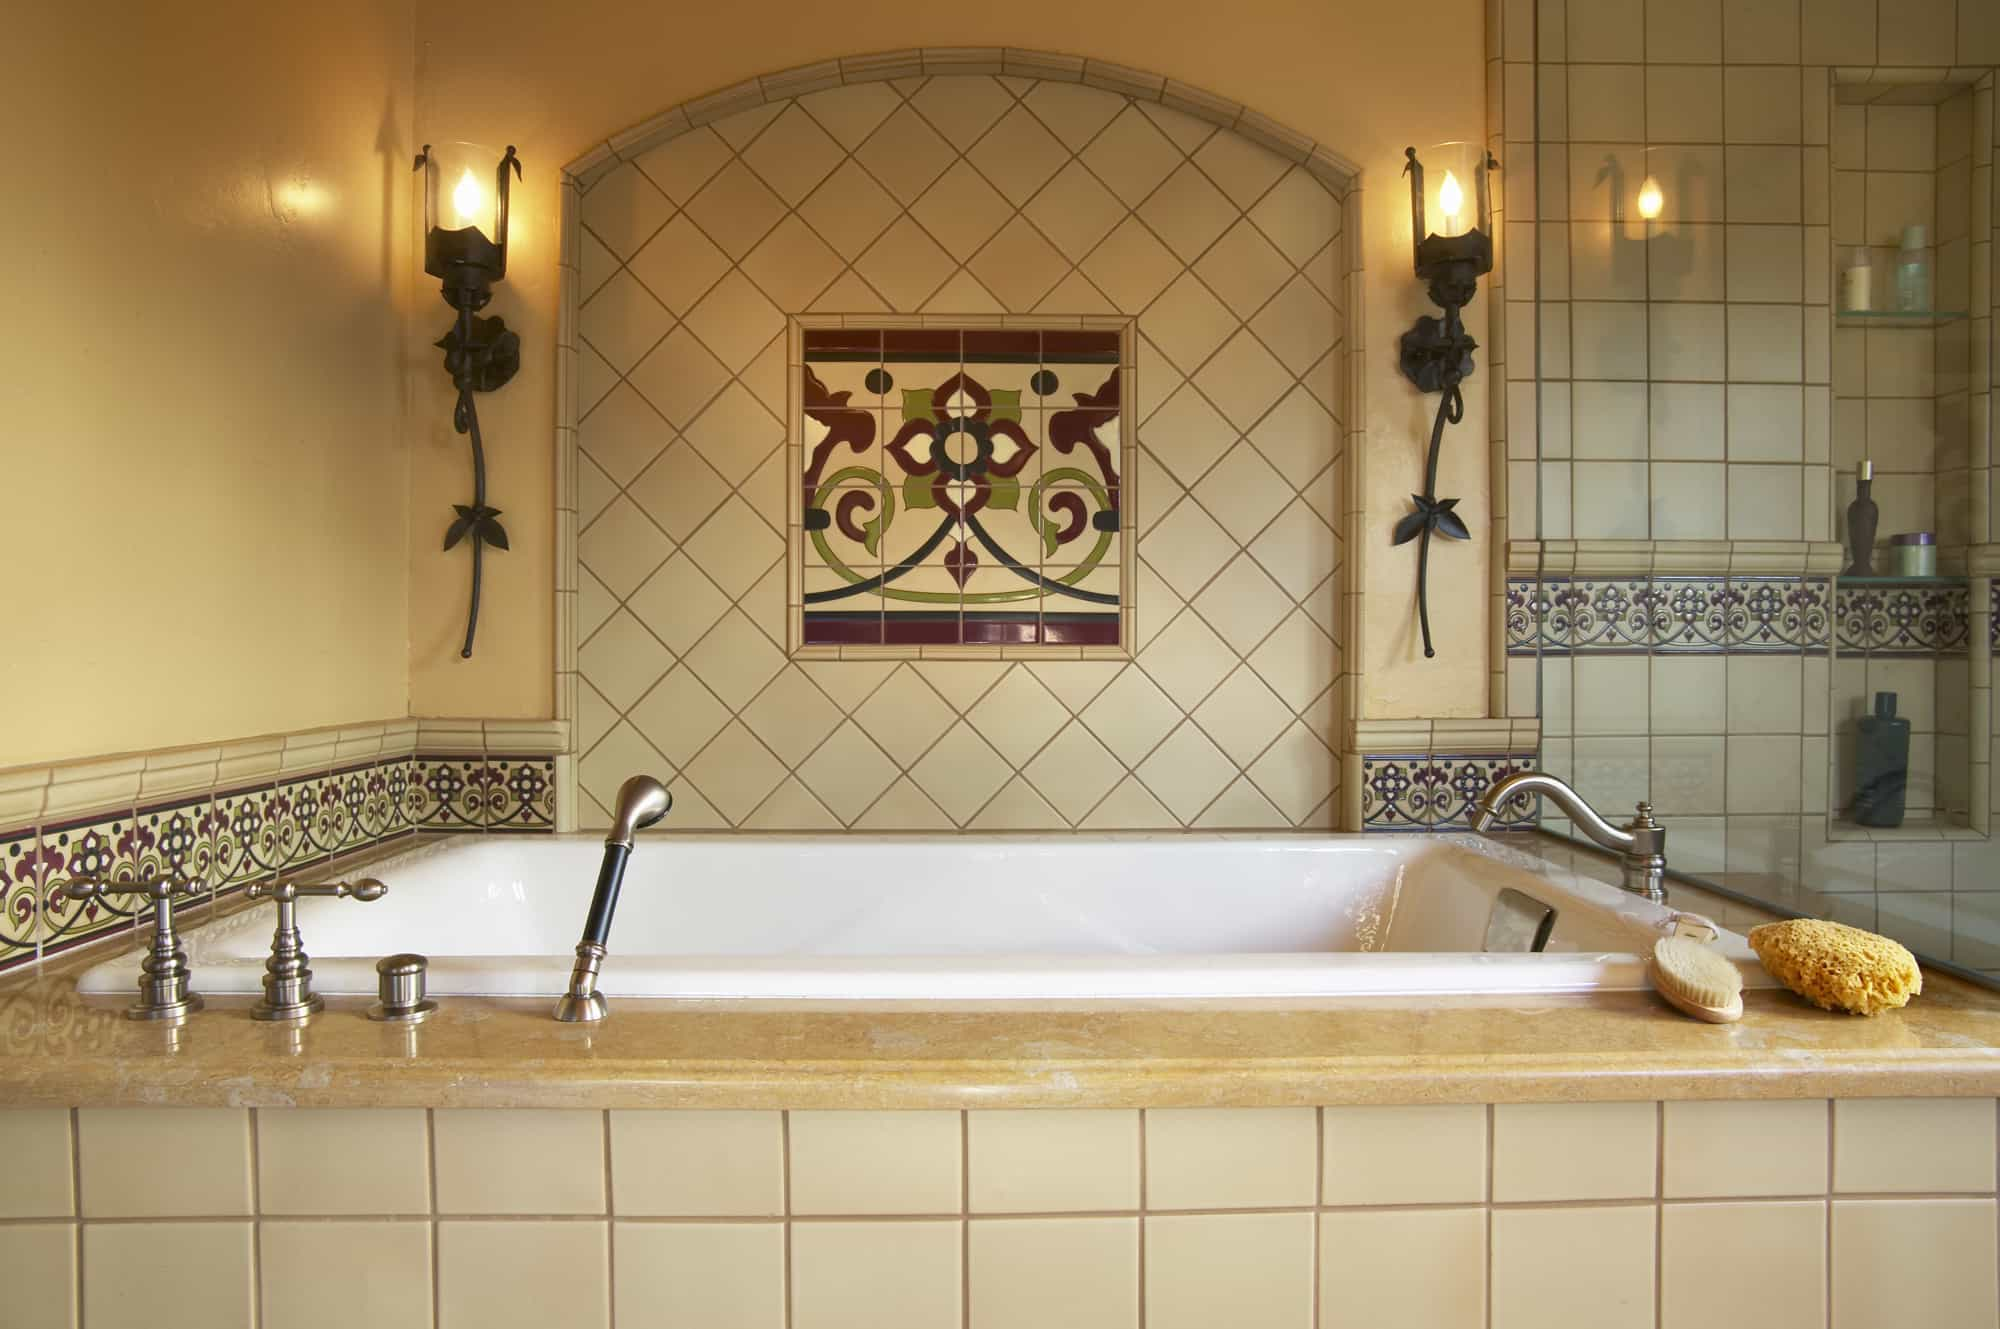 Mexican Inspired Master Bathroom With Soaker Tub (Image 6 of 10)